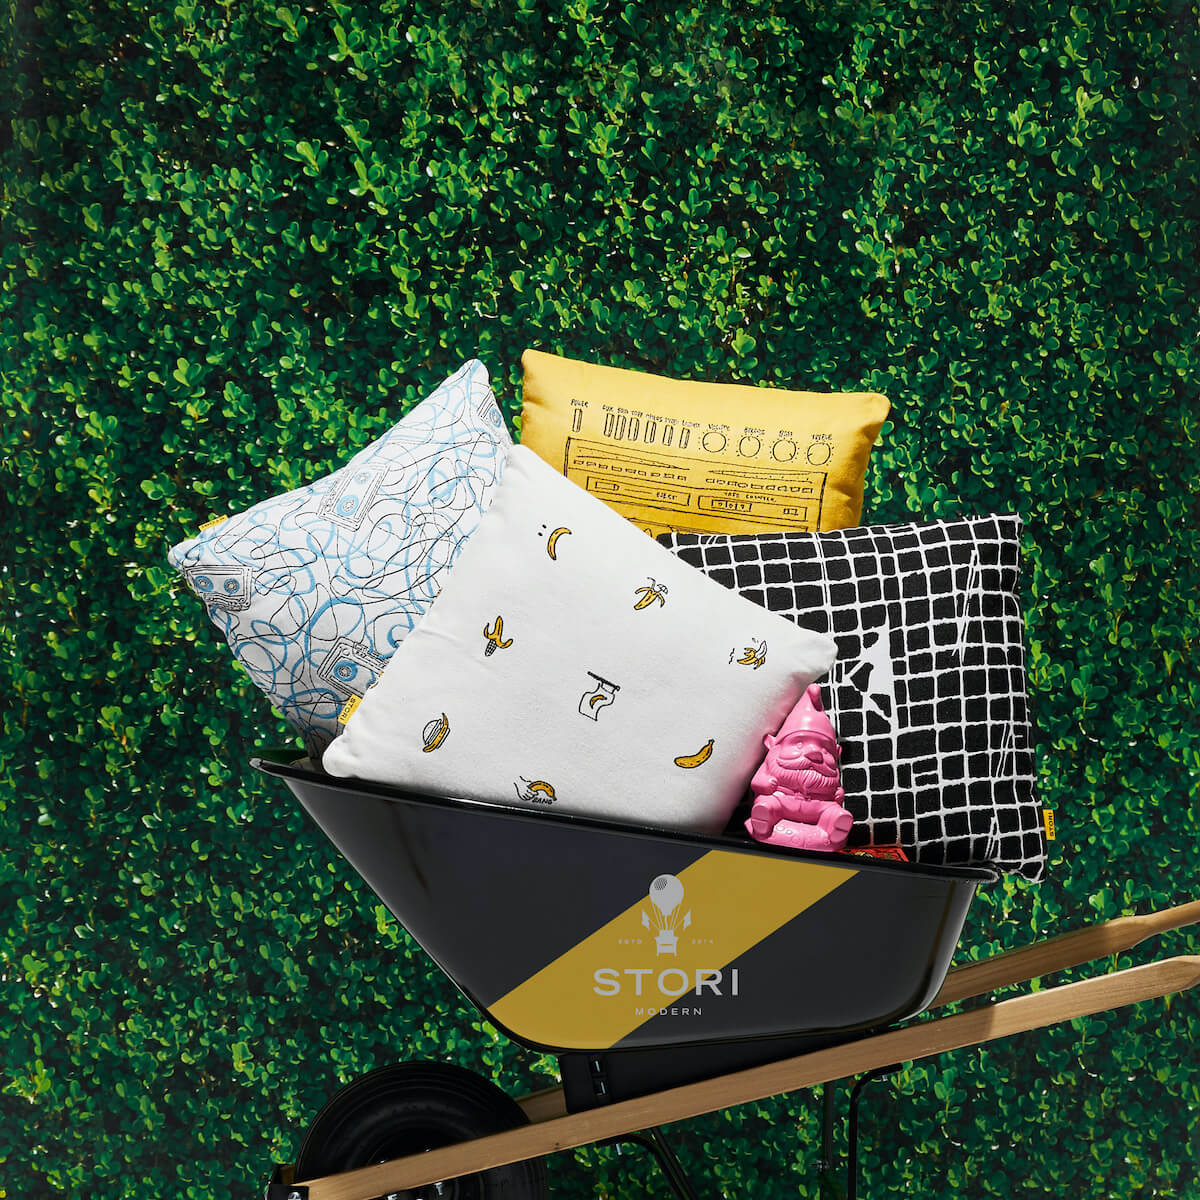 stori modern outdoor throw pillows in a wheel barrow